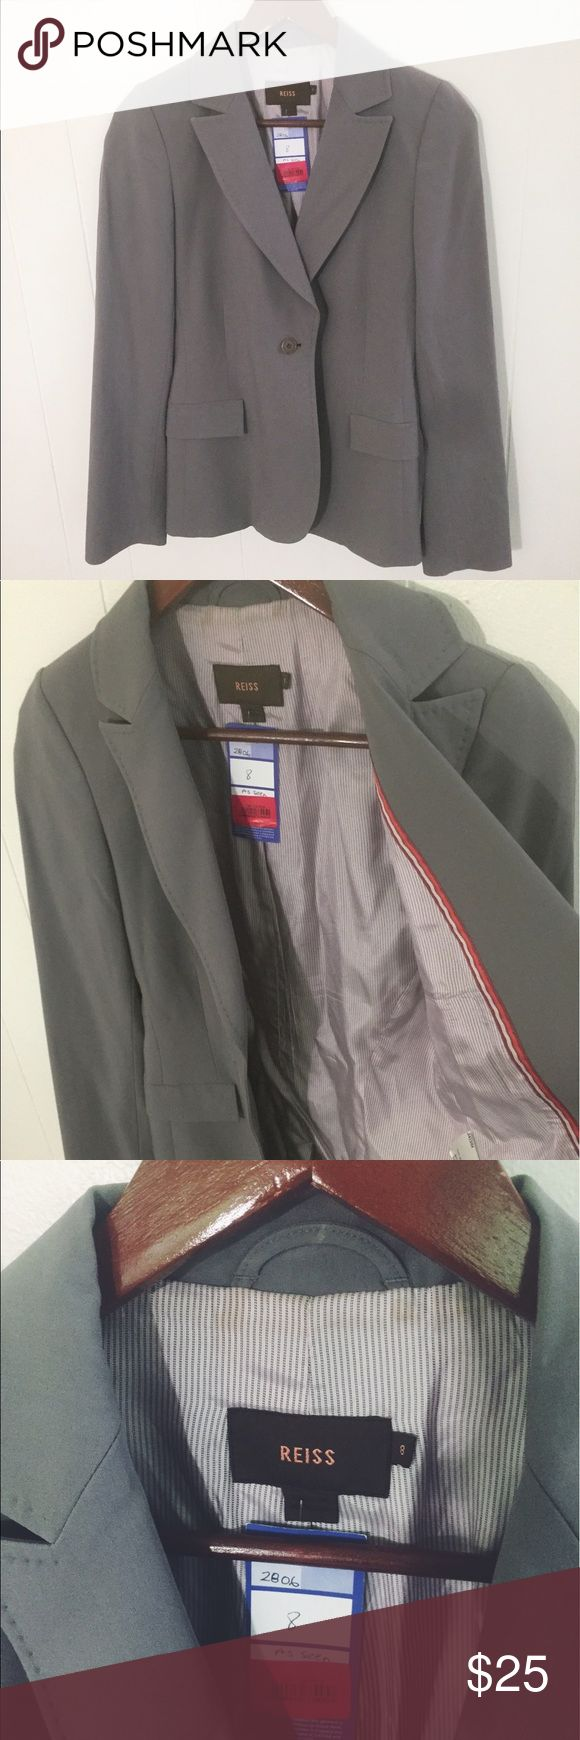 Reiss Gray Blazer suit Reiss gray blazer. Very cute and classy. Has some signs of wear but inside the jacket so not seen when worn. Reiss Jackets & Coats Blazers